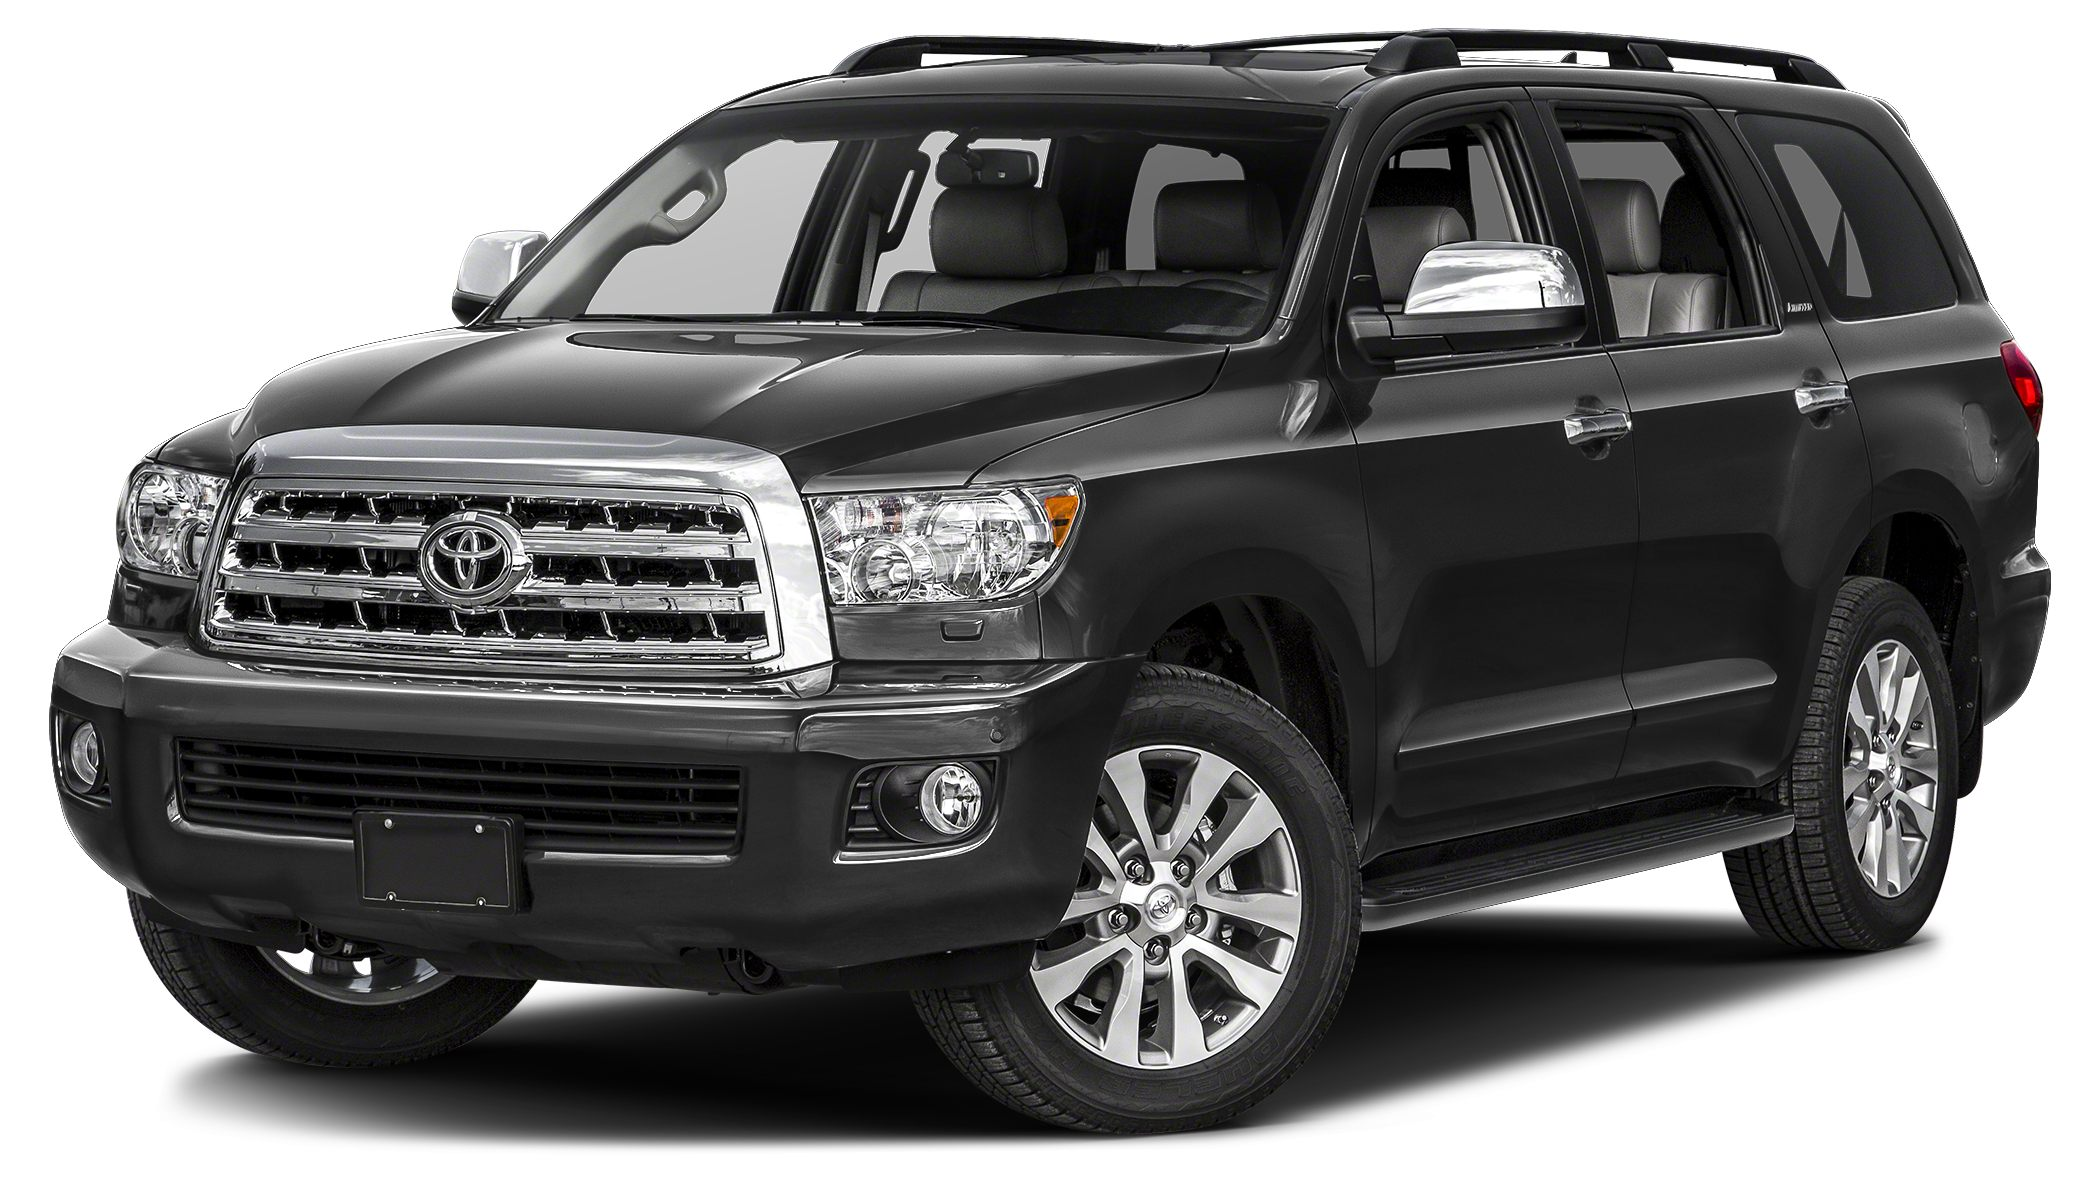 2016 Toyota Sequoia Limited 2016 Toyota Sequoia Limited 57L V8 ELECTRIFYING It does everything